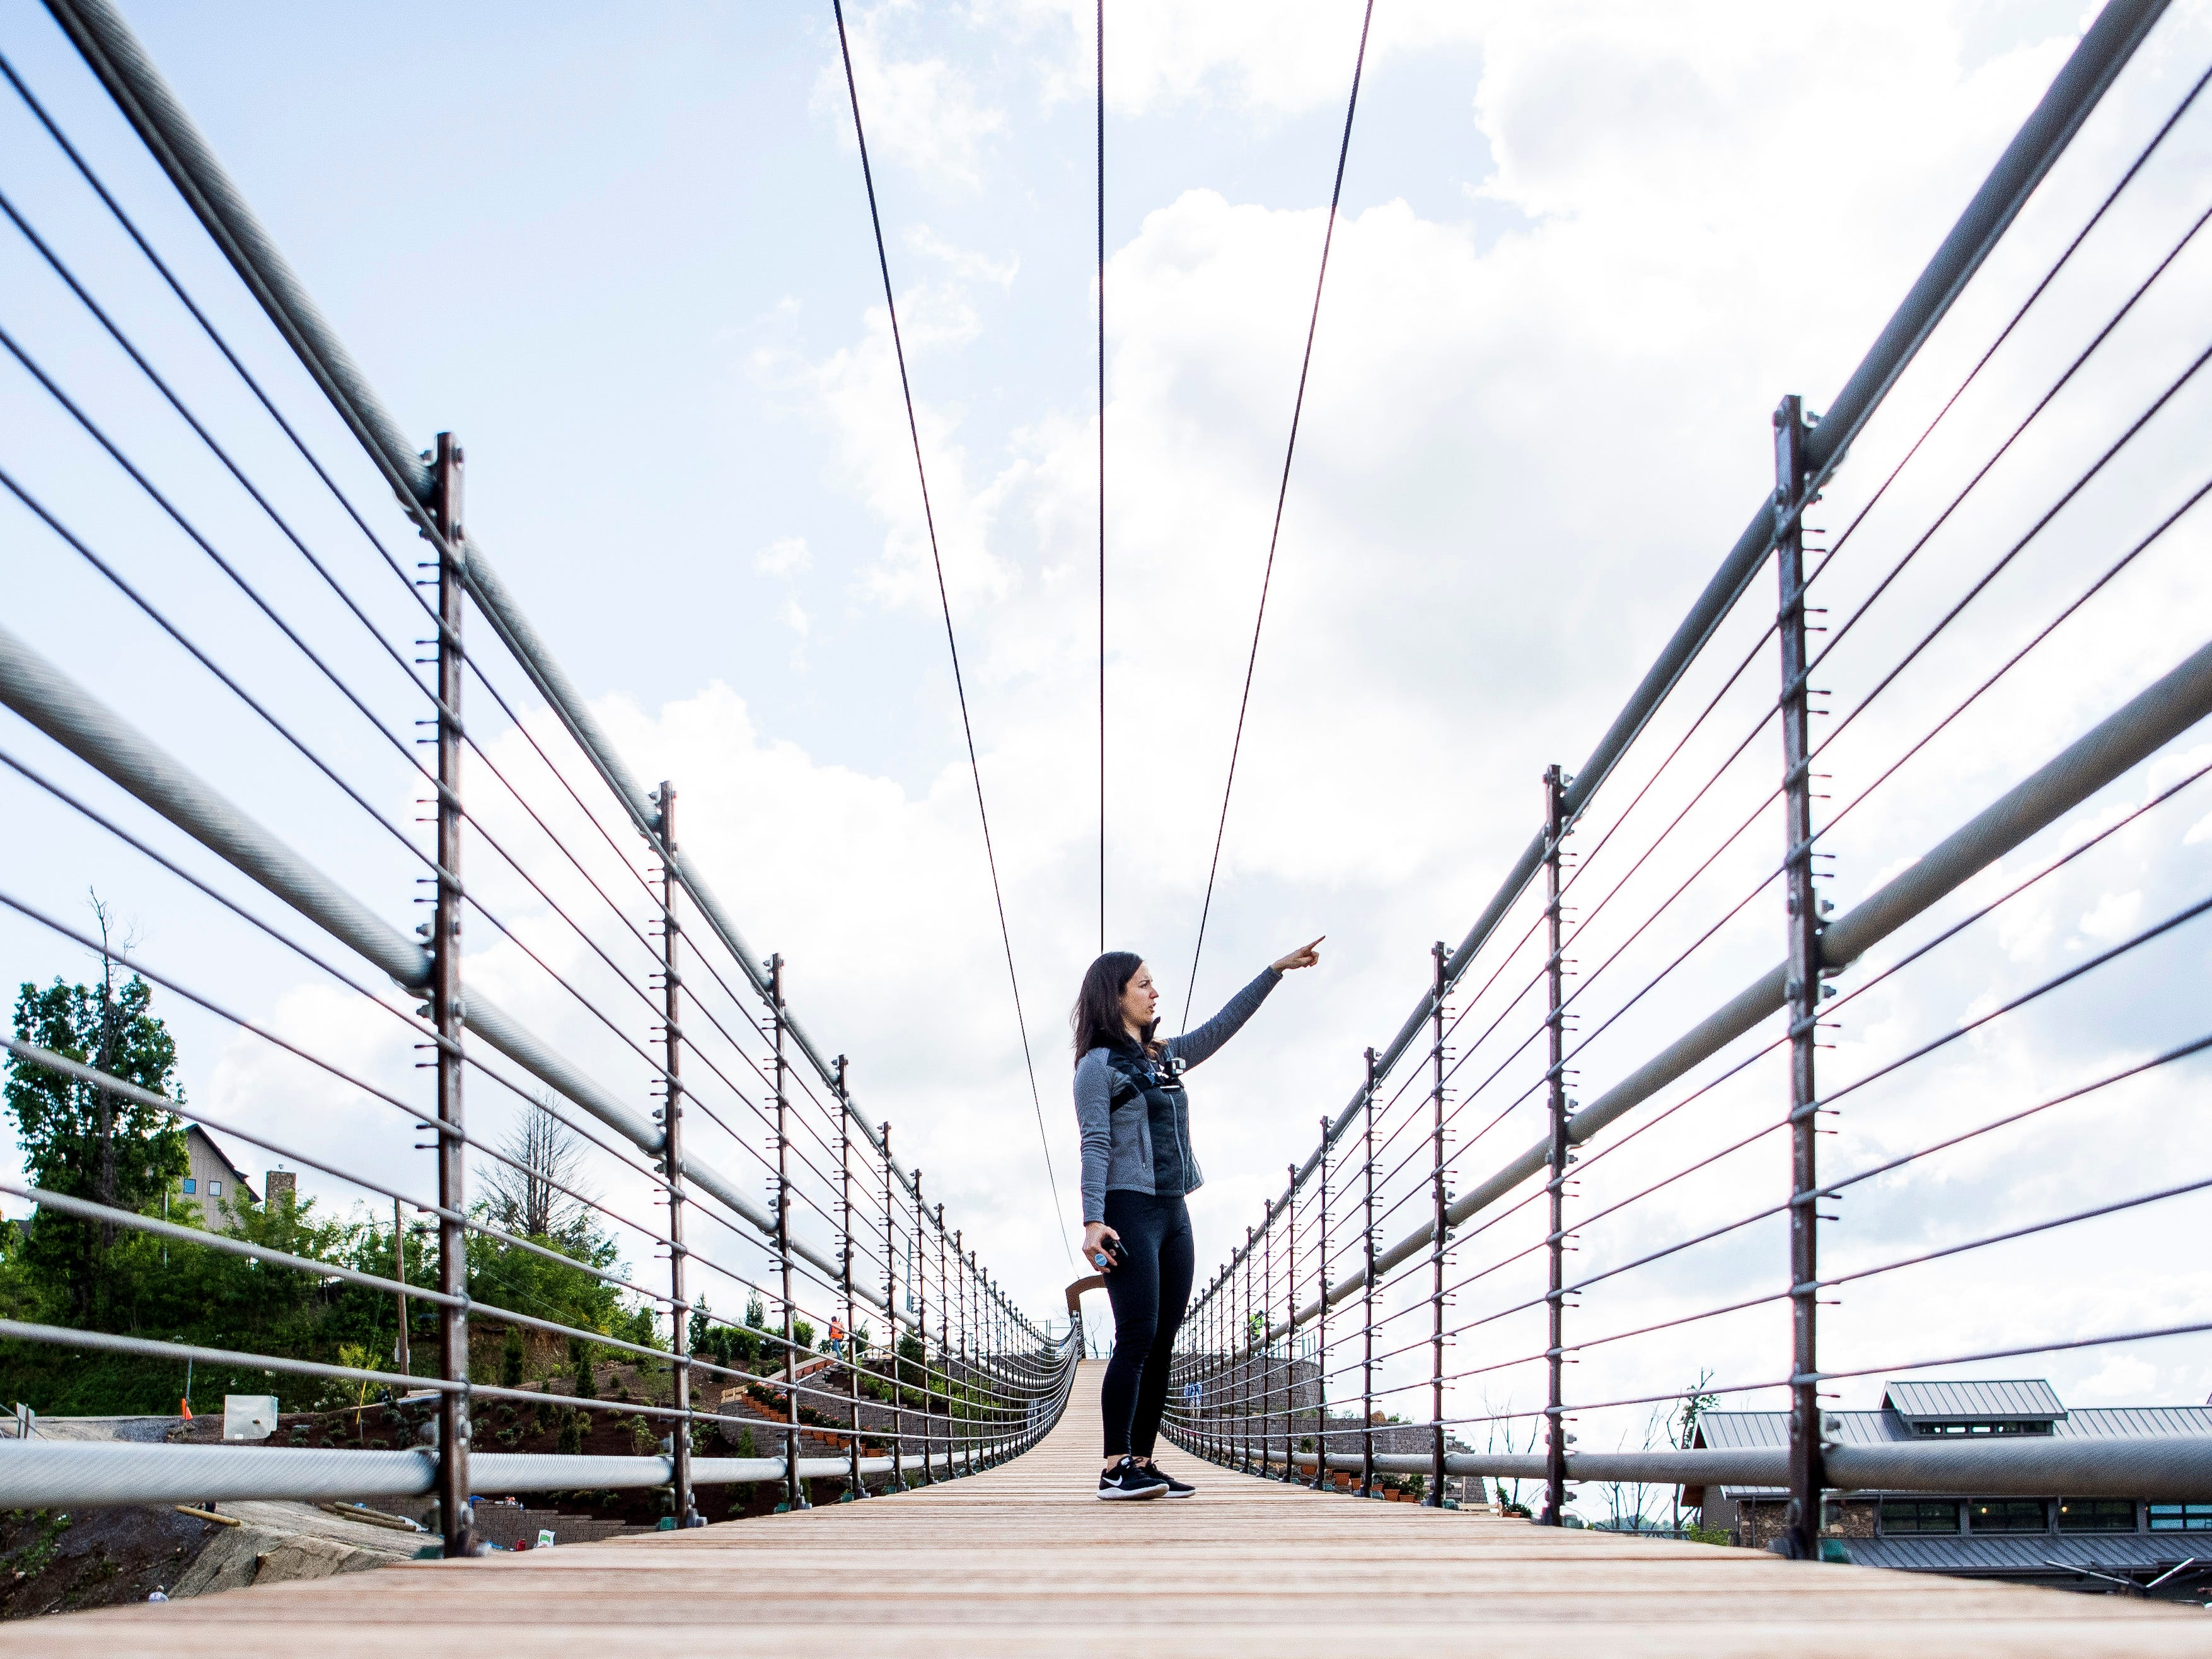 Knoxville News Sentinel reporter Brenna Mcdermott points out views of the Smoky Mountains from the Gatlinburg SkyBridge, North America's longest pedestrian suspension bridge, on Tuesday, May 14, 2019.